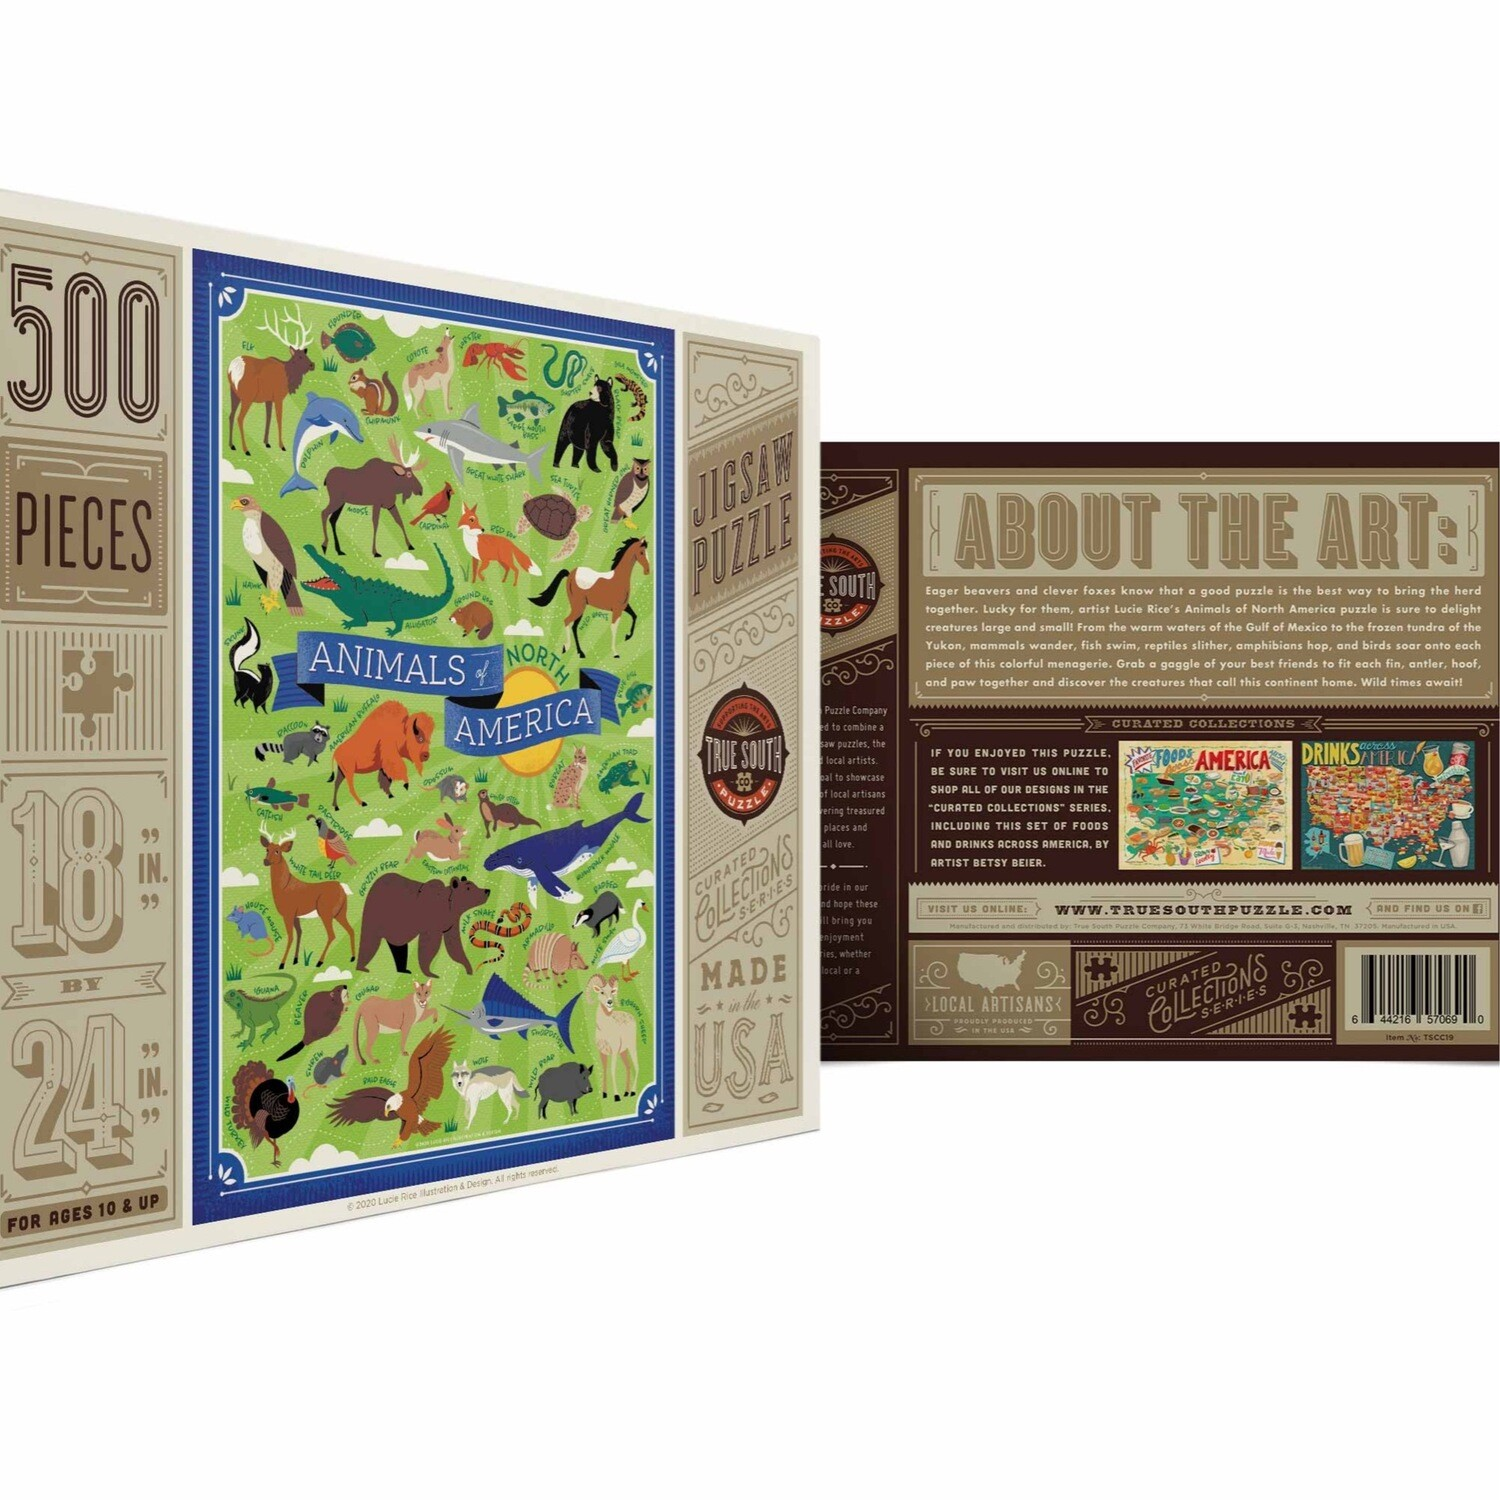 True south 500 piece puzzle Animals of America